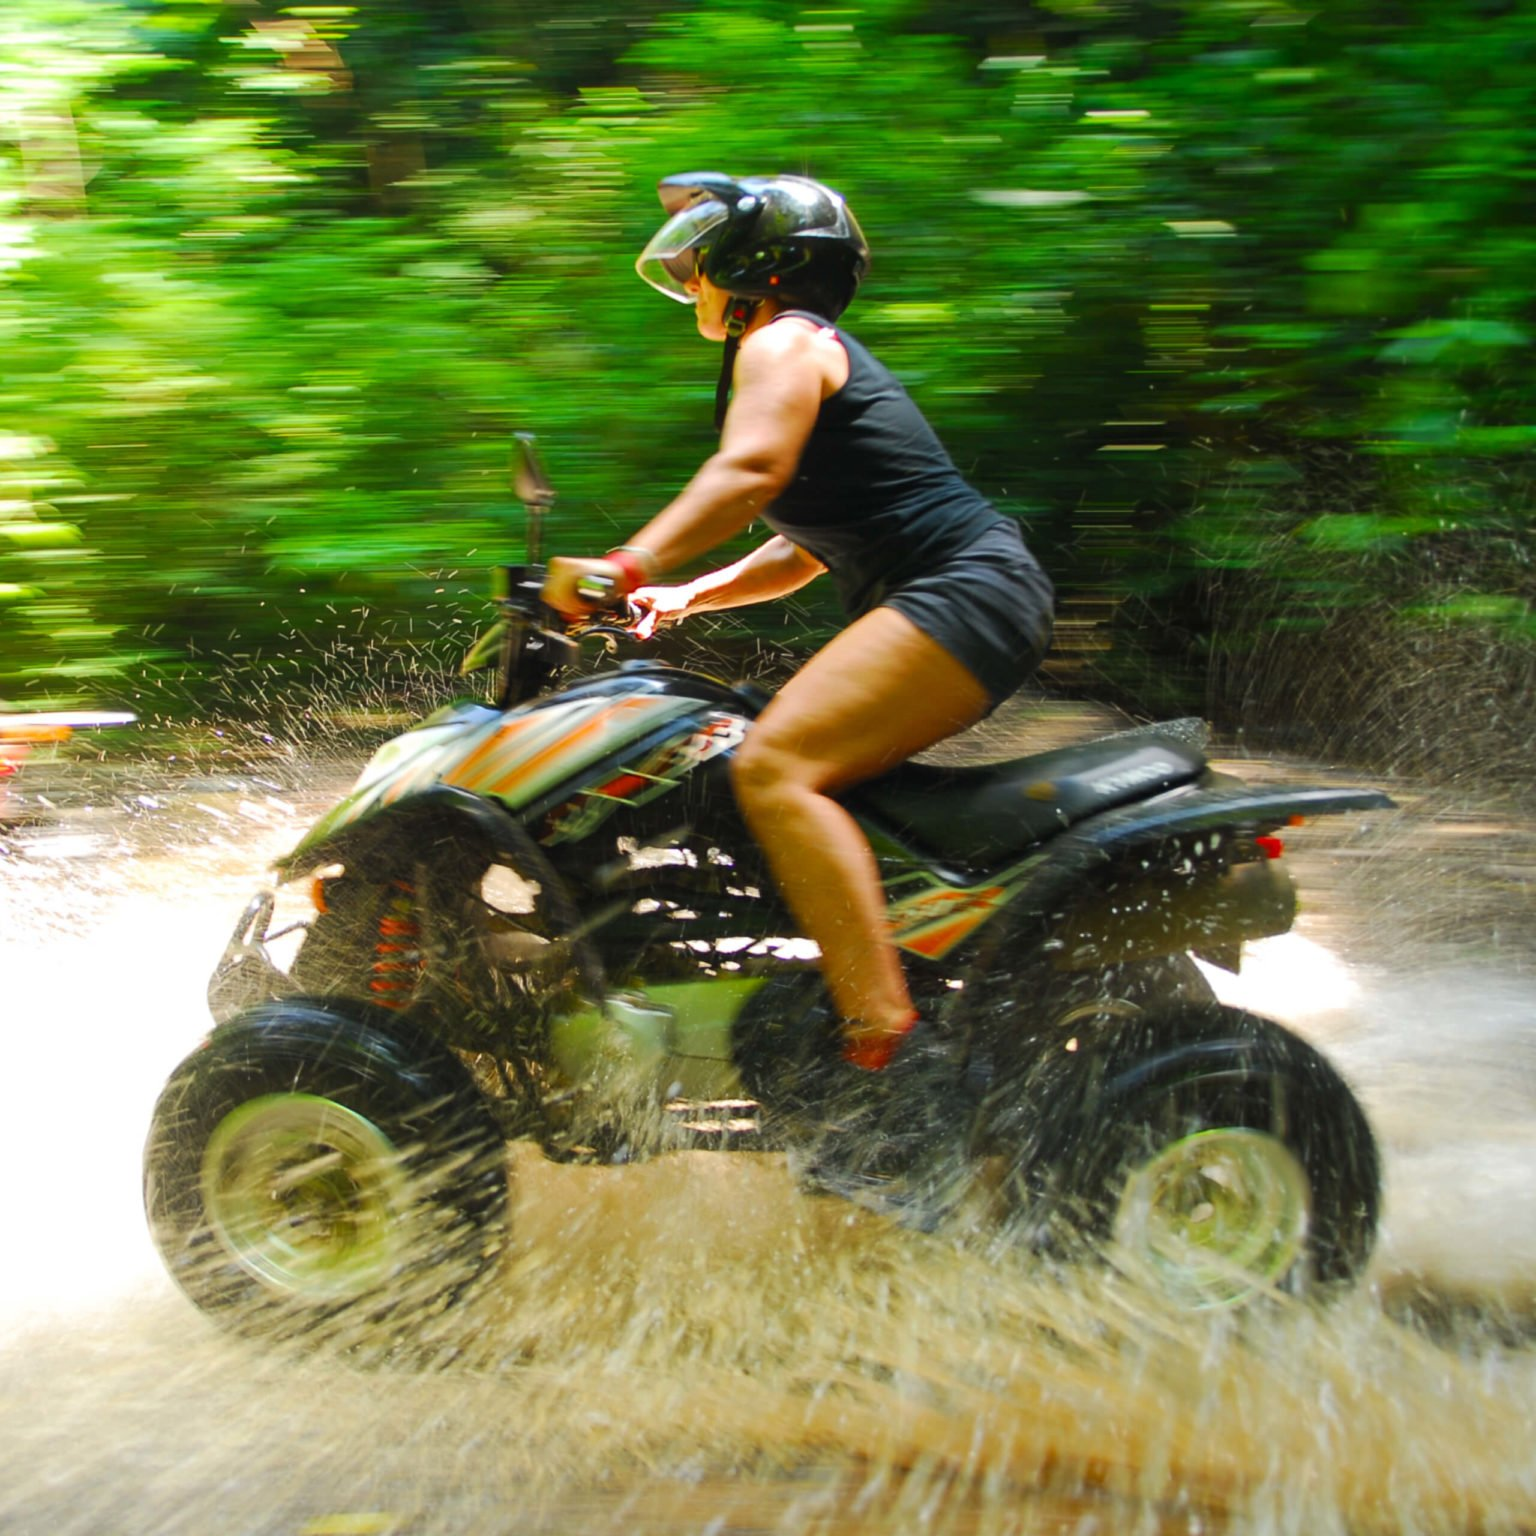 Uvita ATV & 4x4 Tours through the jungle in Costa Rica